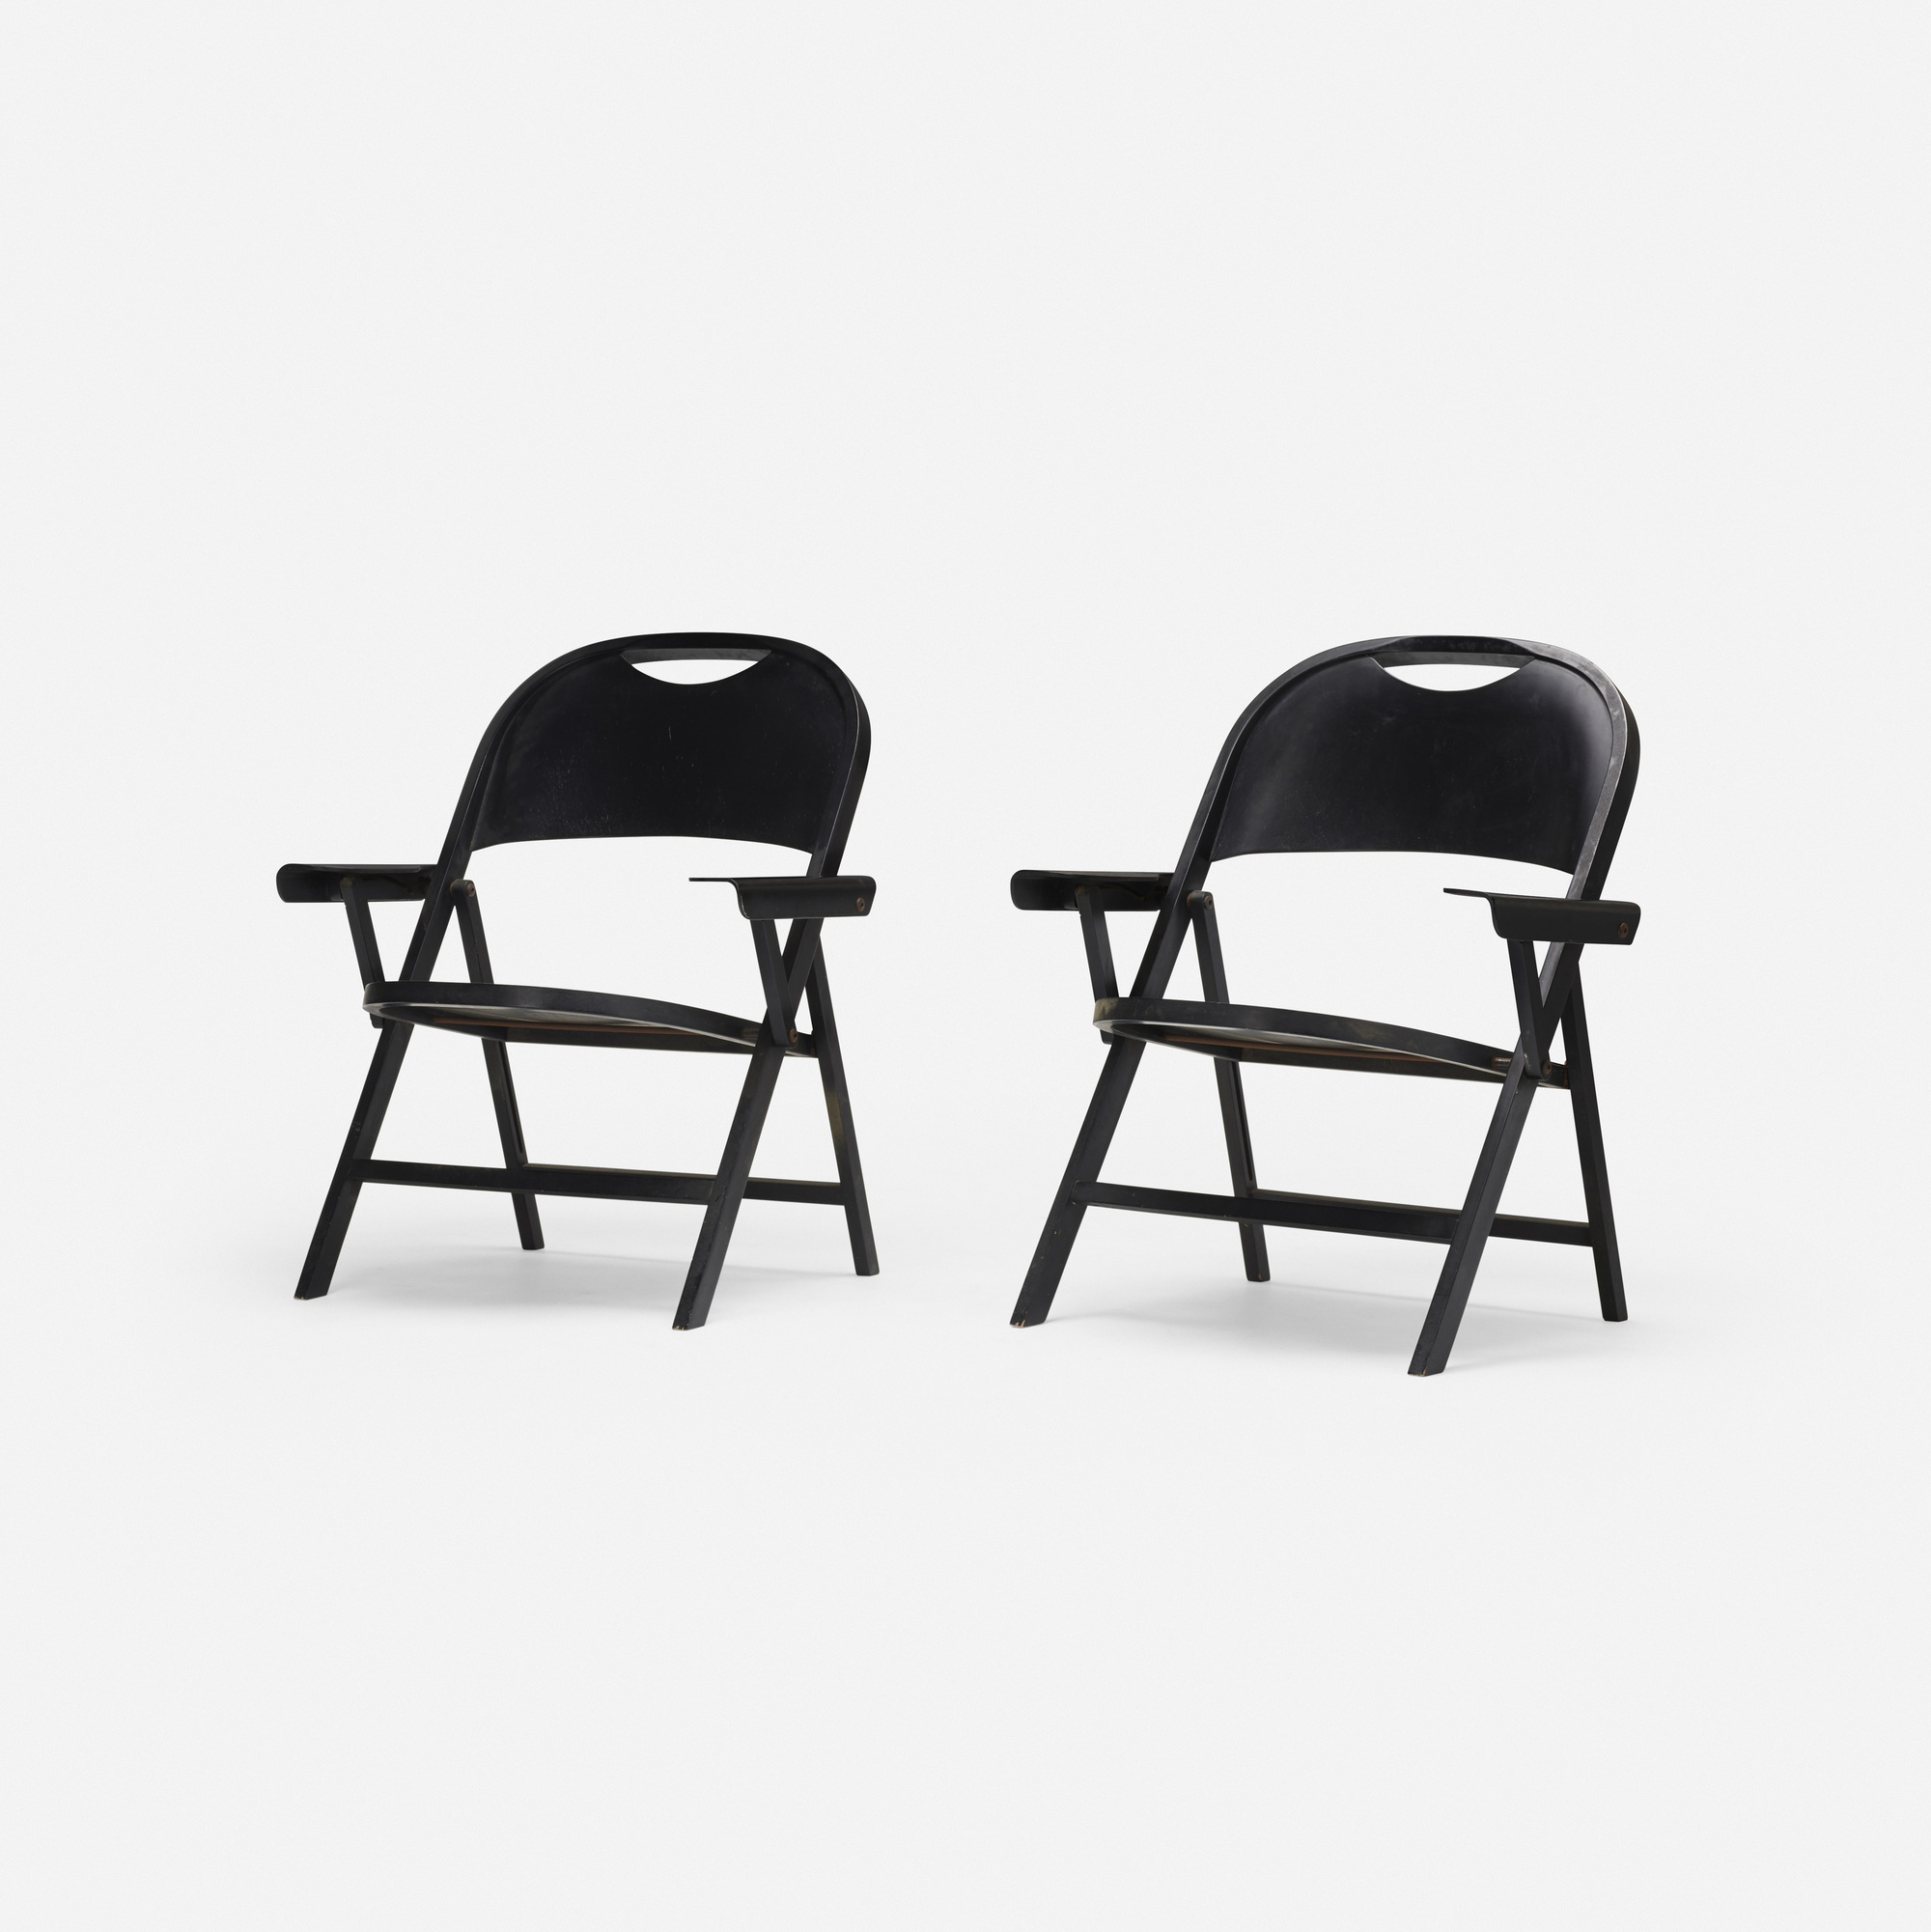 196: Achille and Pier Giacomo Castiglioni / Ginevra folding chairs, pair (1 of 3)